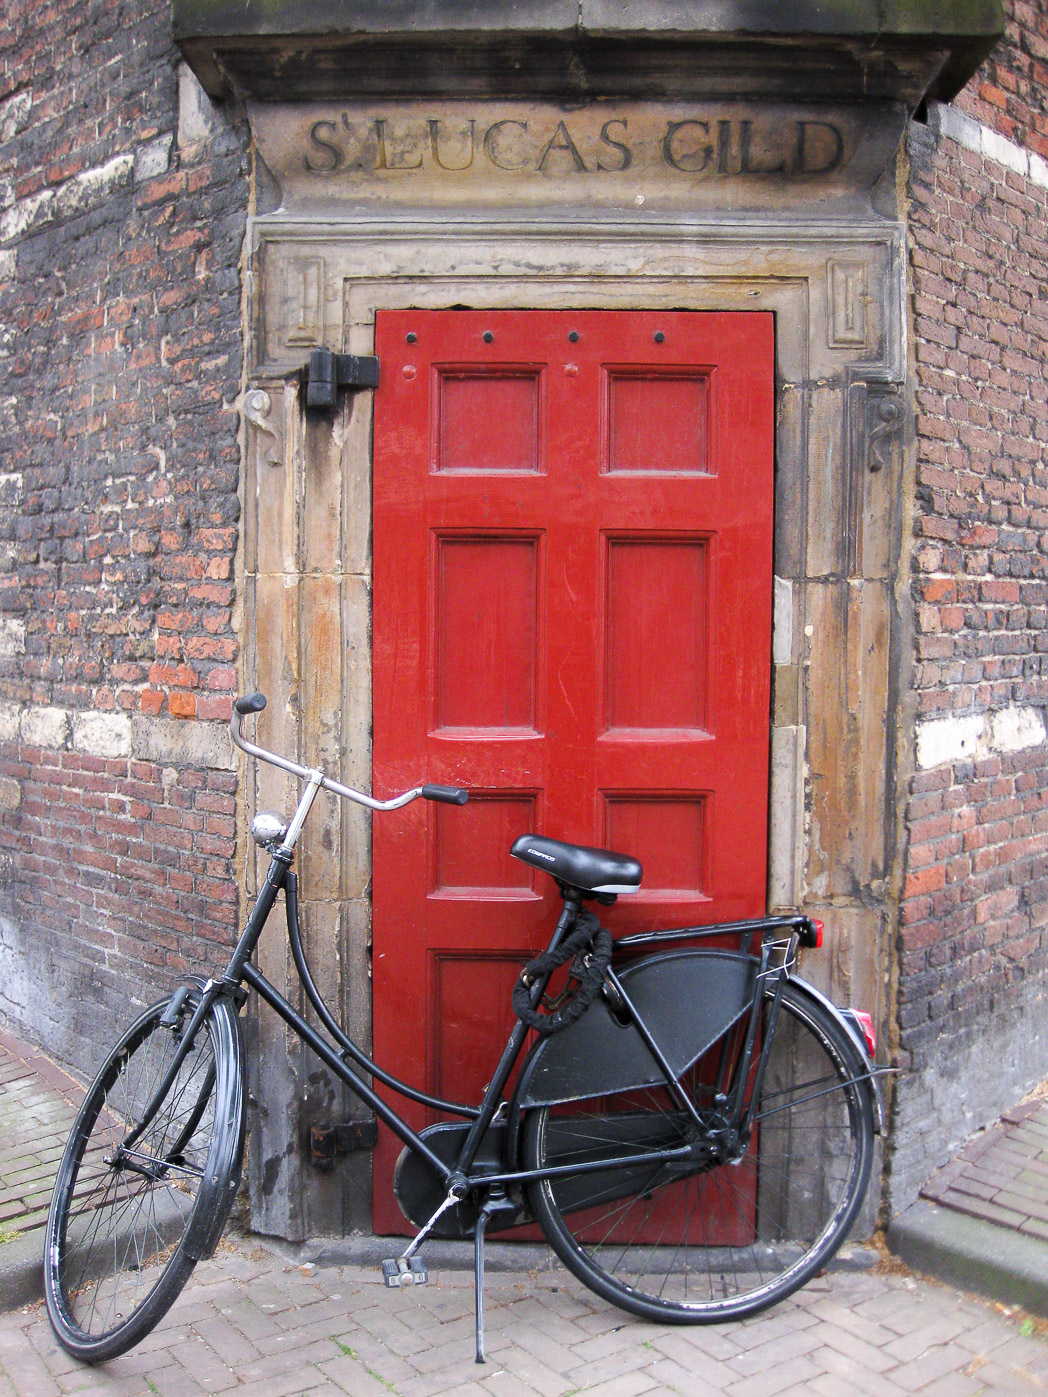 photograph taken outside the distinctive and historically important Waag Society building at Nieuwmarkt in Amsterdam. there is a red door, above which is a stone chiselled sign saying St Lucas Guild. in front of the door there is a typical Amsterdam black bicycle.